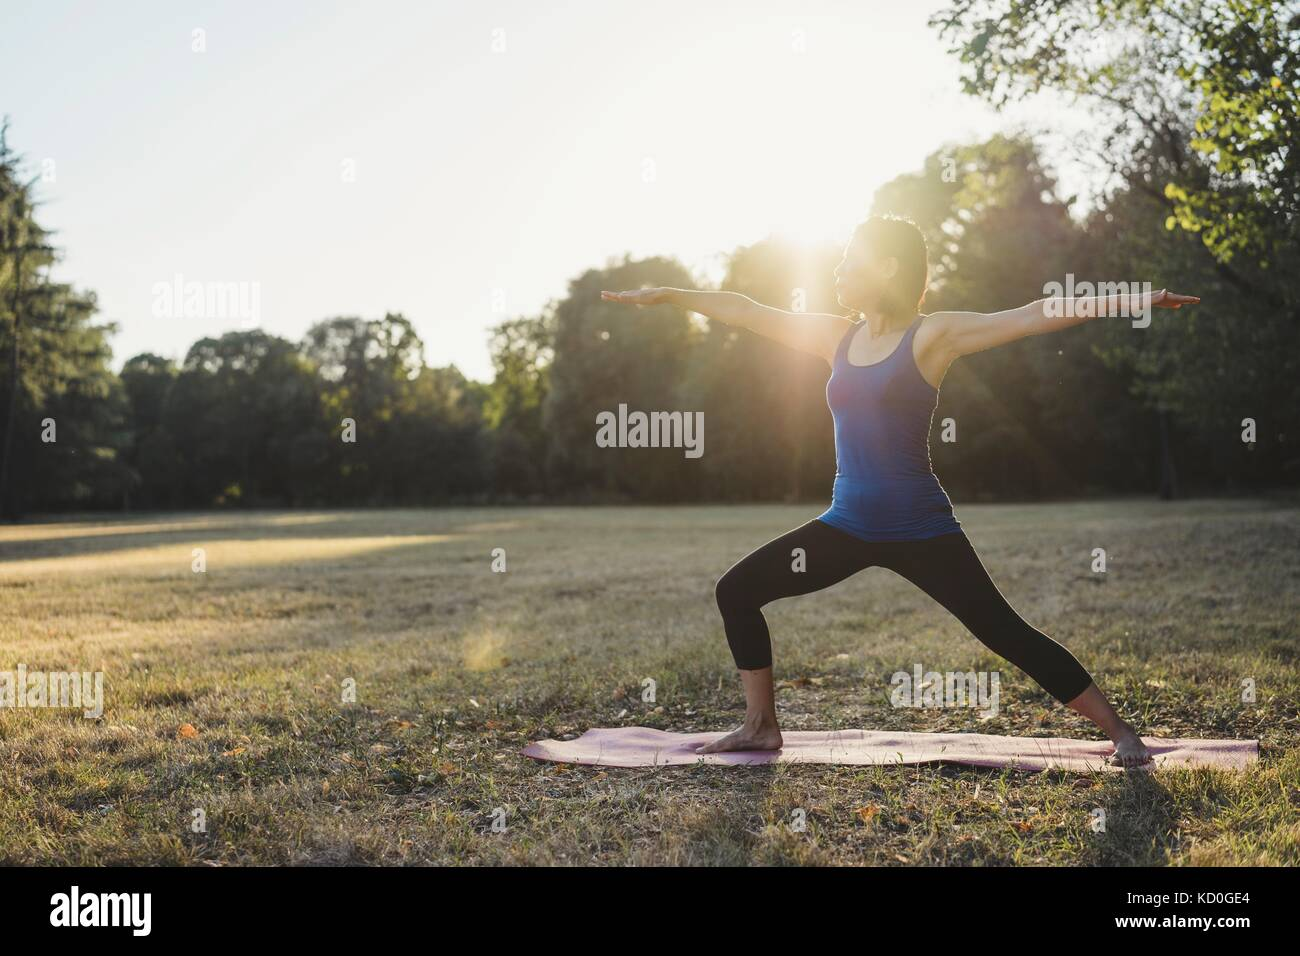 Mature woman in park, standing in yoga position, arms outstretched - Stock Image